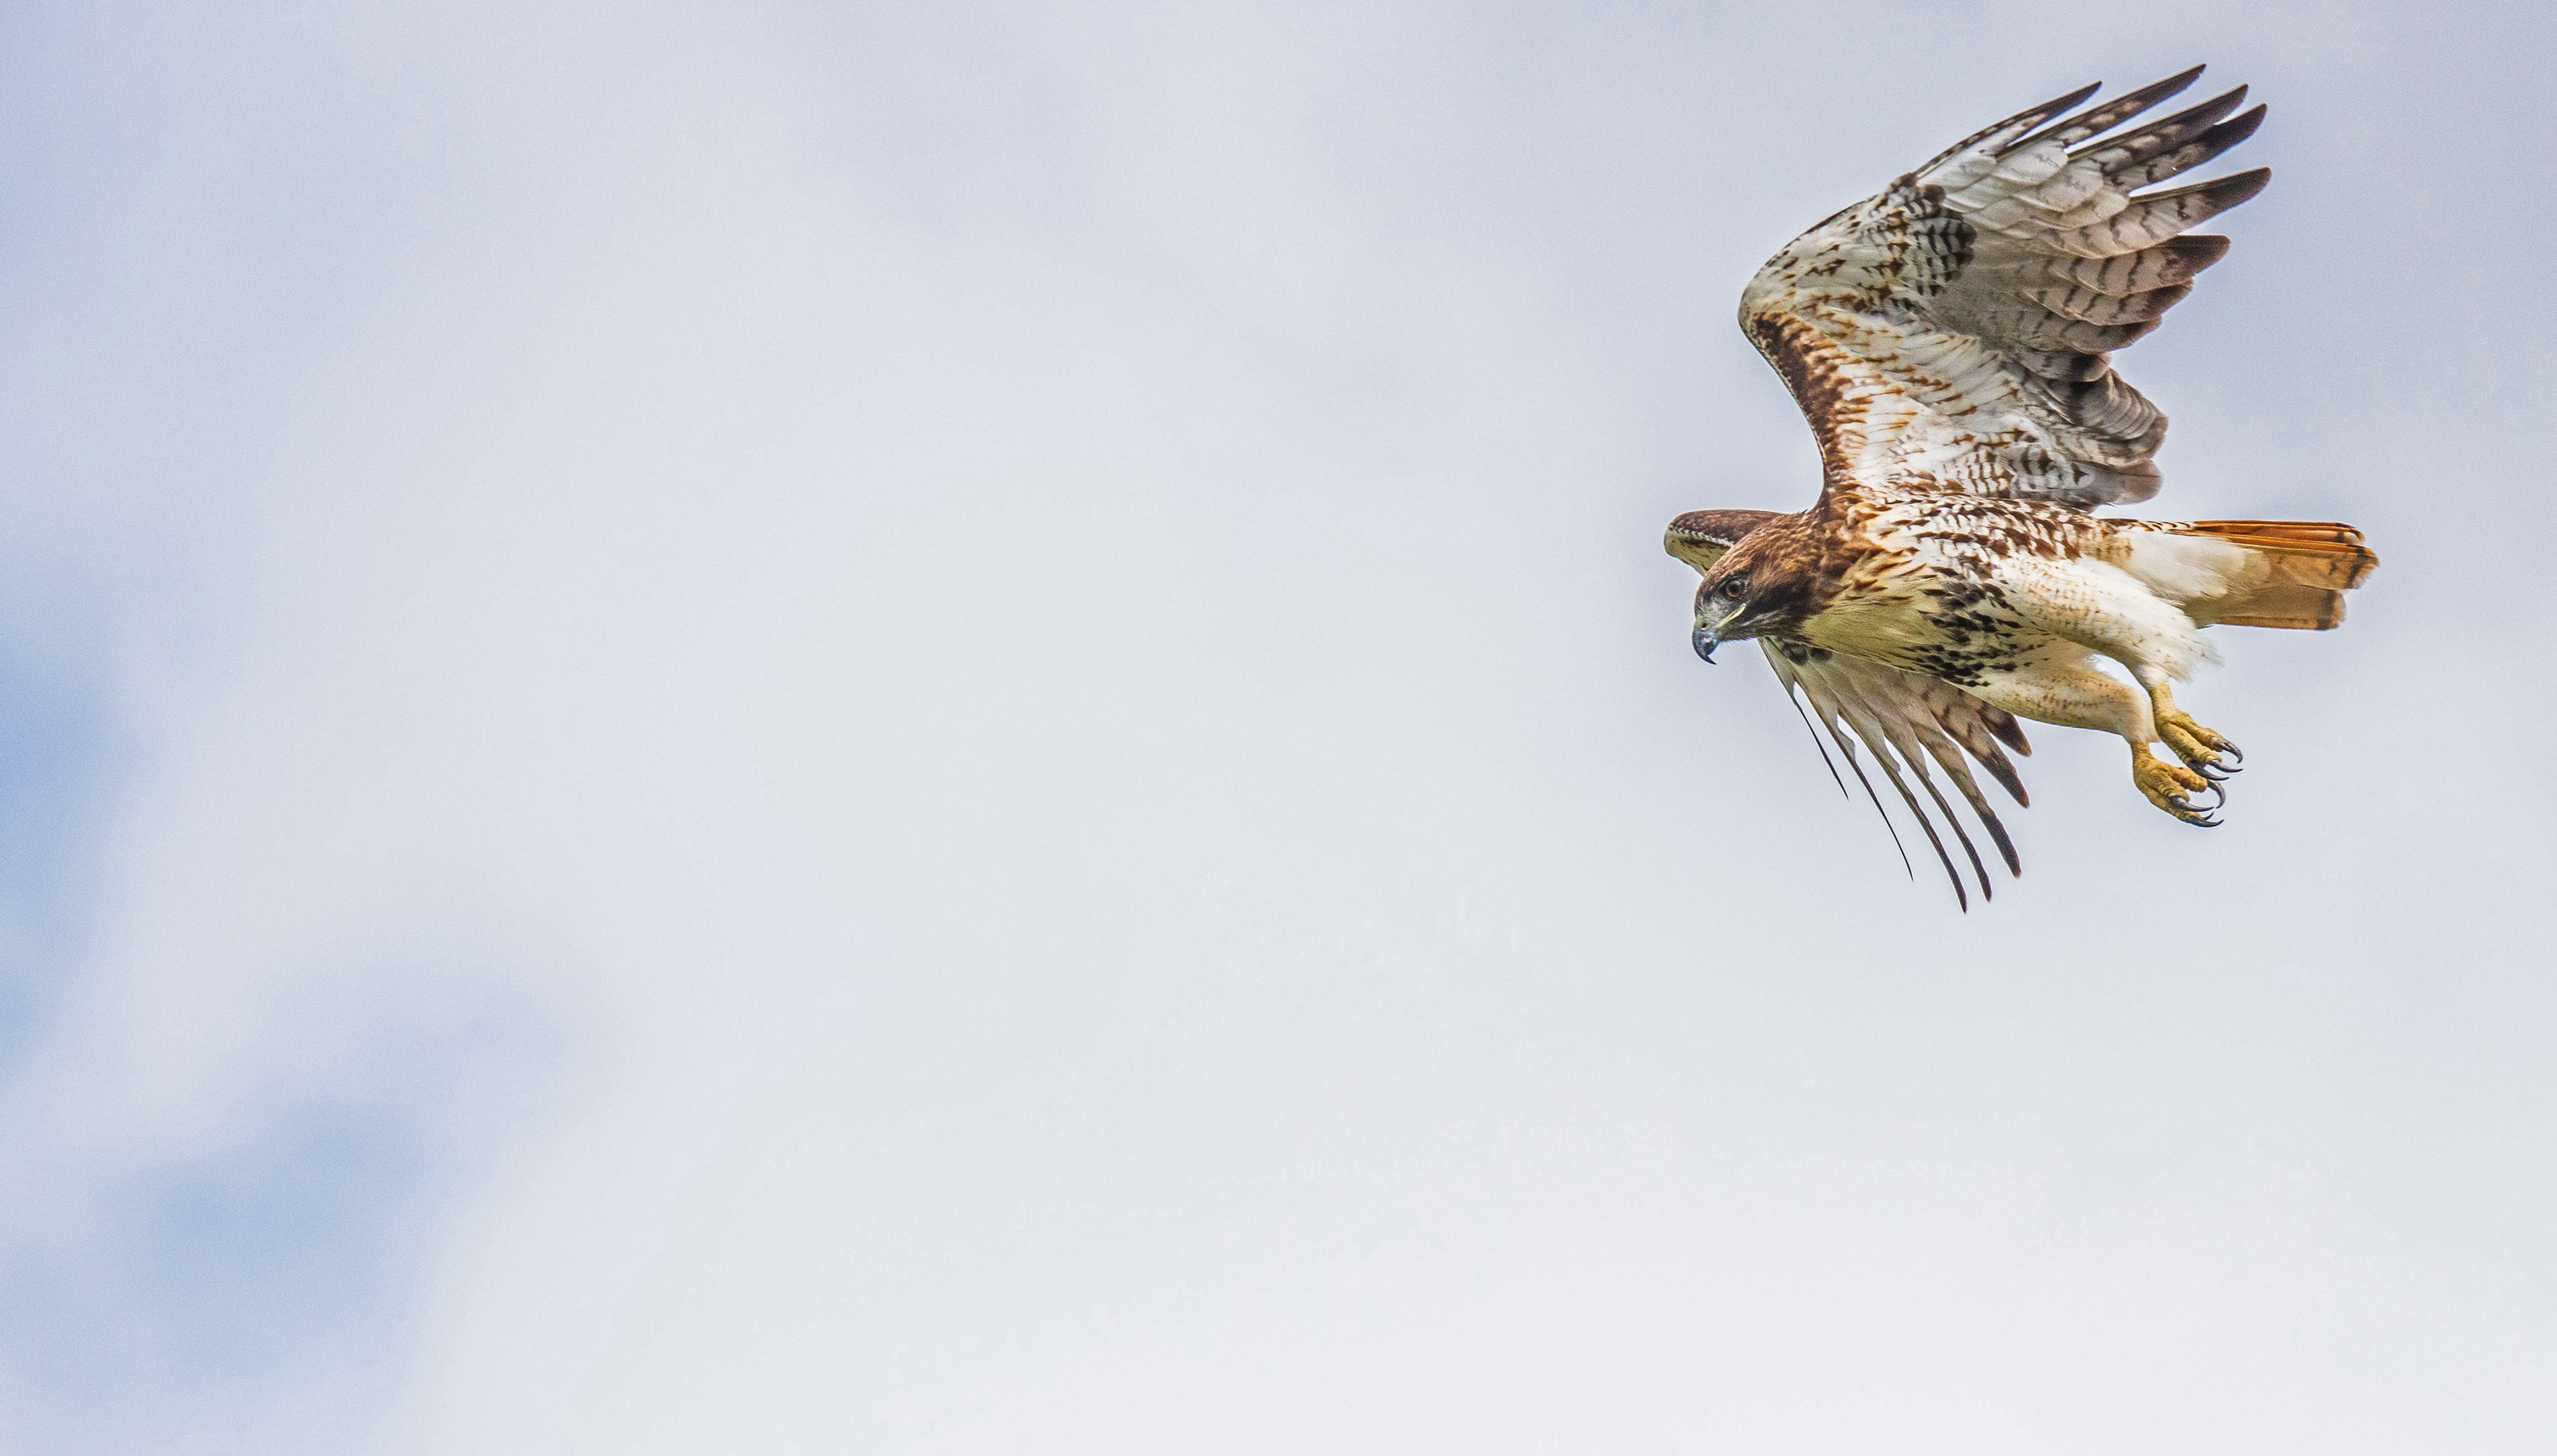 223-Red-tailed-hawk-Launching-(2)-f.jpg